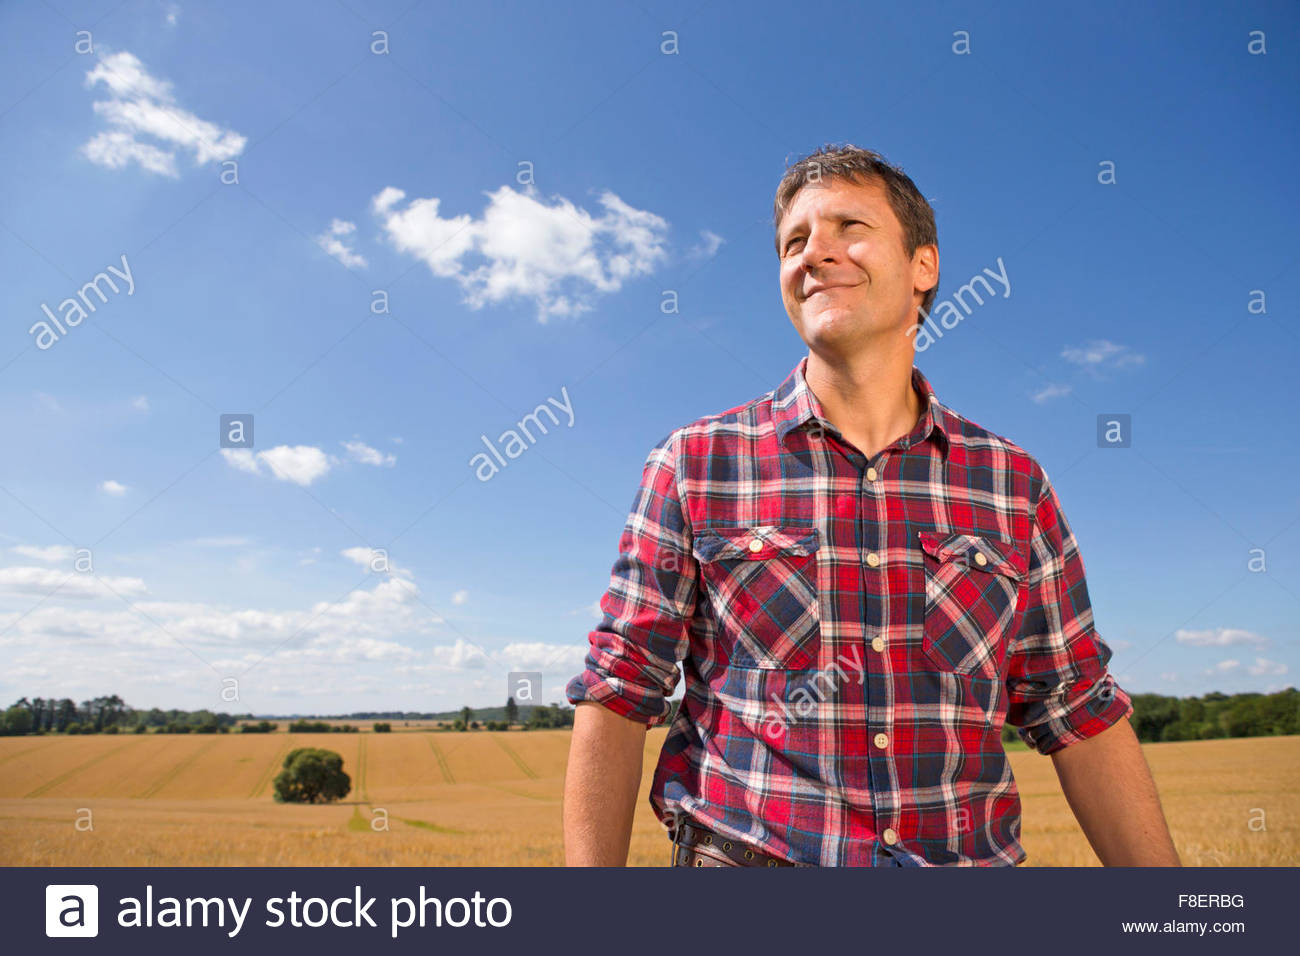 Smiling farmer in sunny rural barley crop field in summer - Stock Image